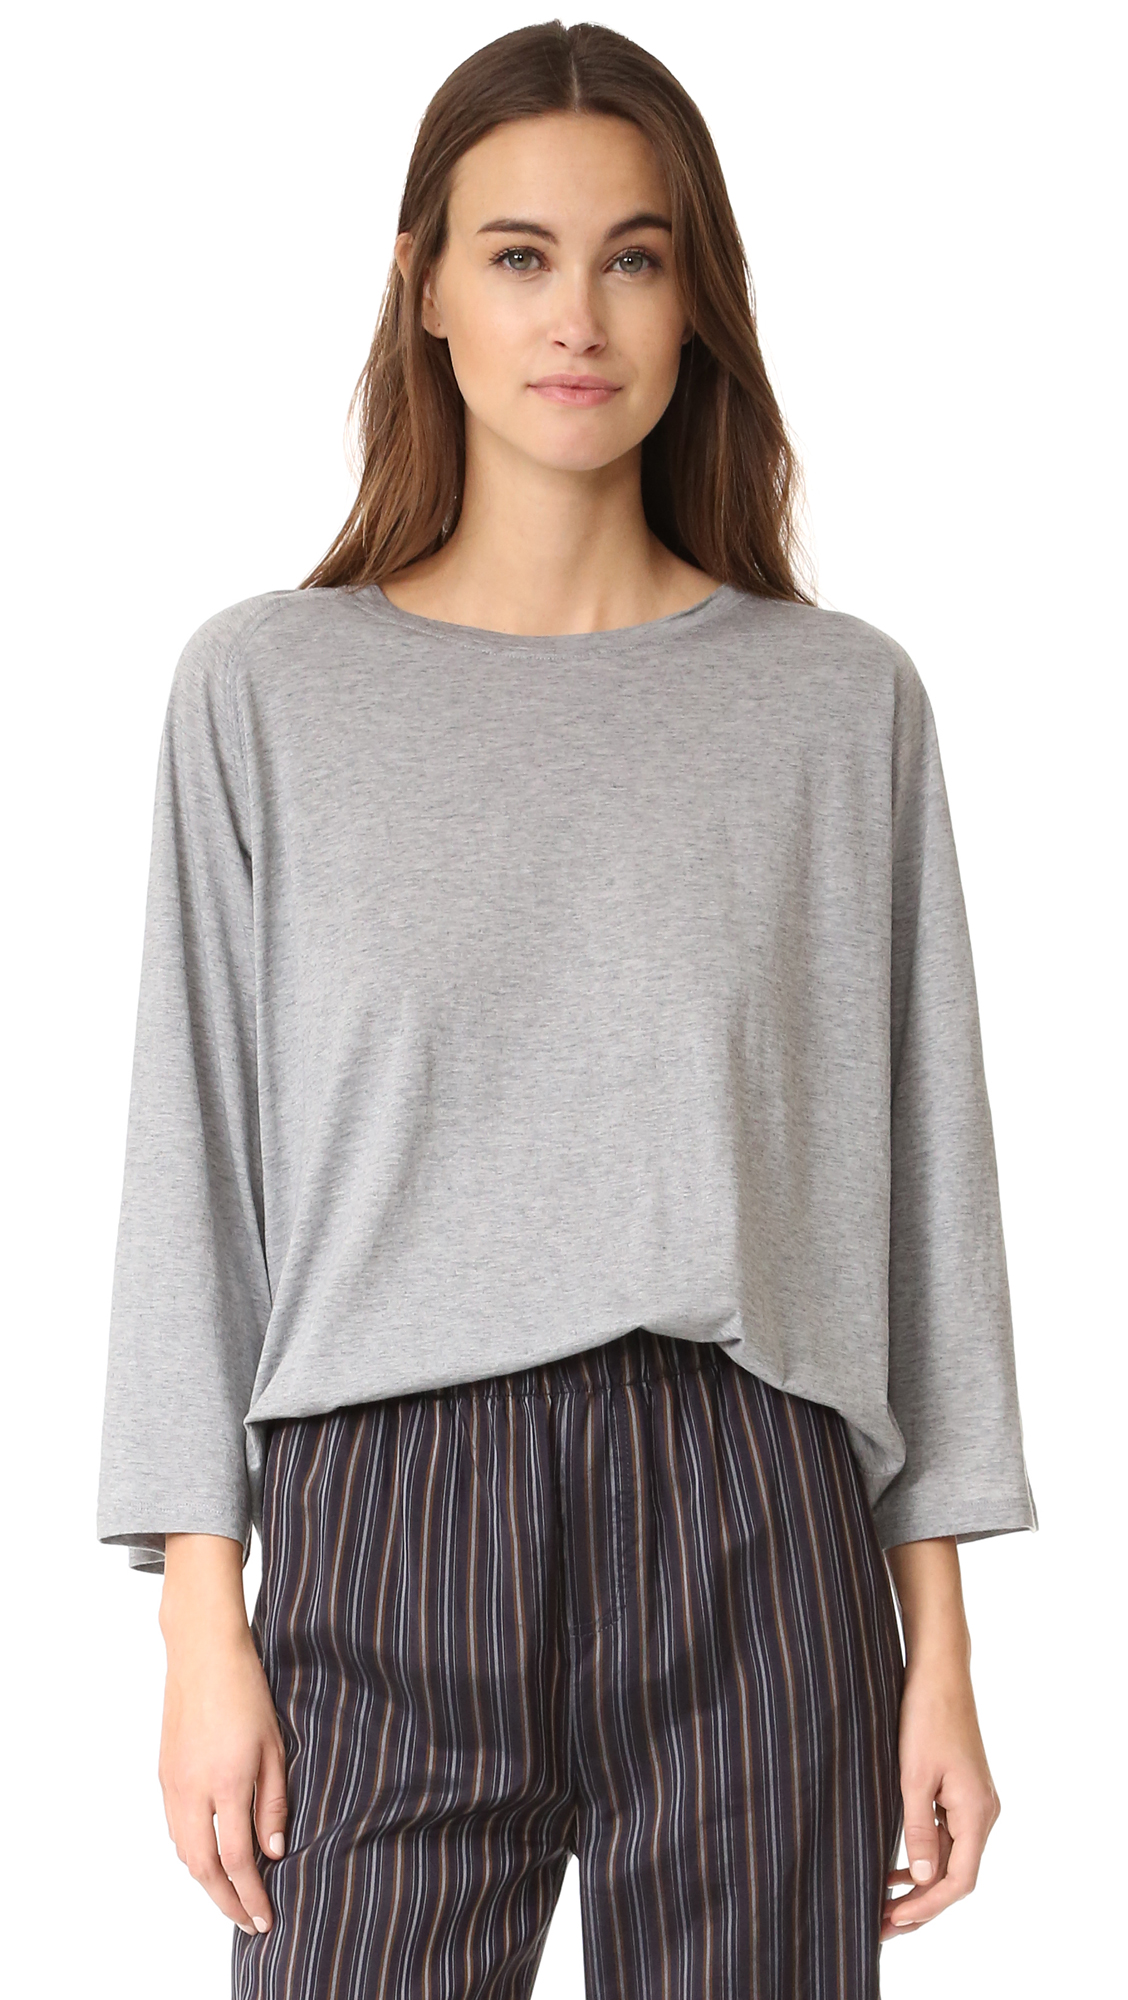 Vince Full Sleeve Raglan Tee - H. Grey at Shopbop